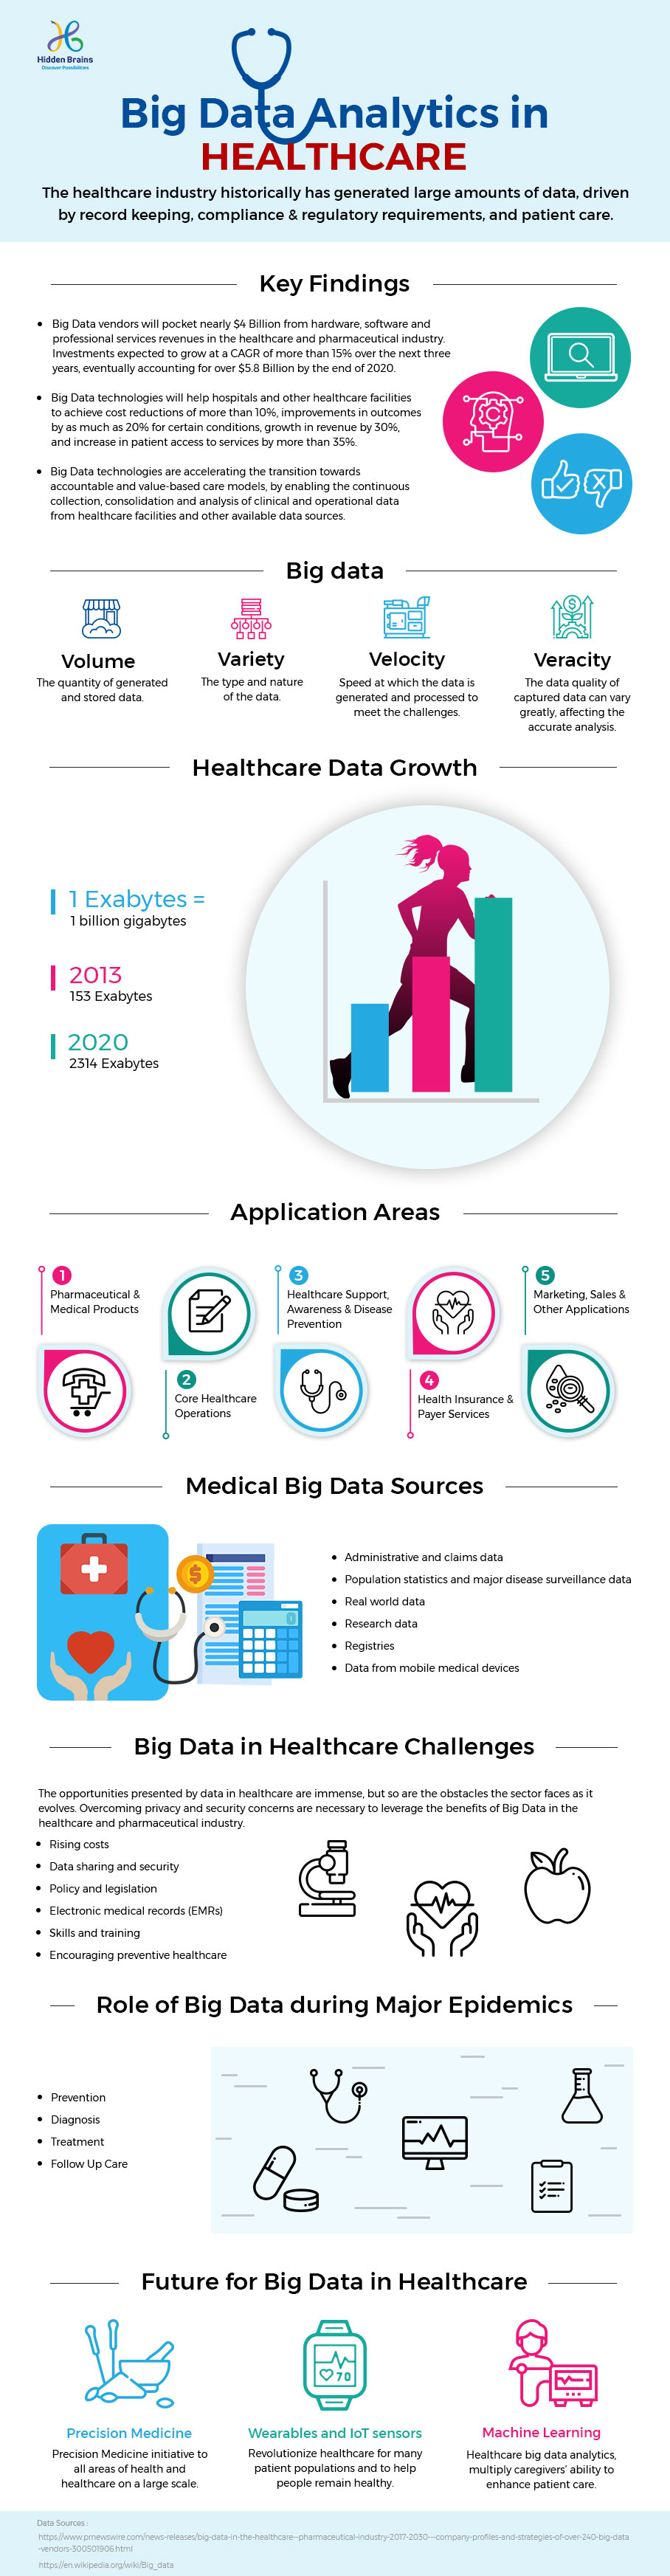 BigData-Analytics-in-Healthcare-infographic-plaza